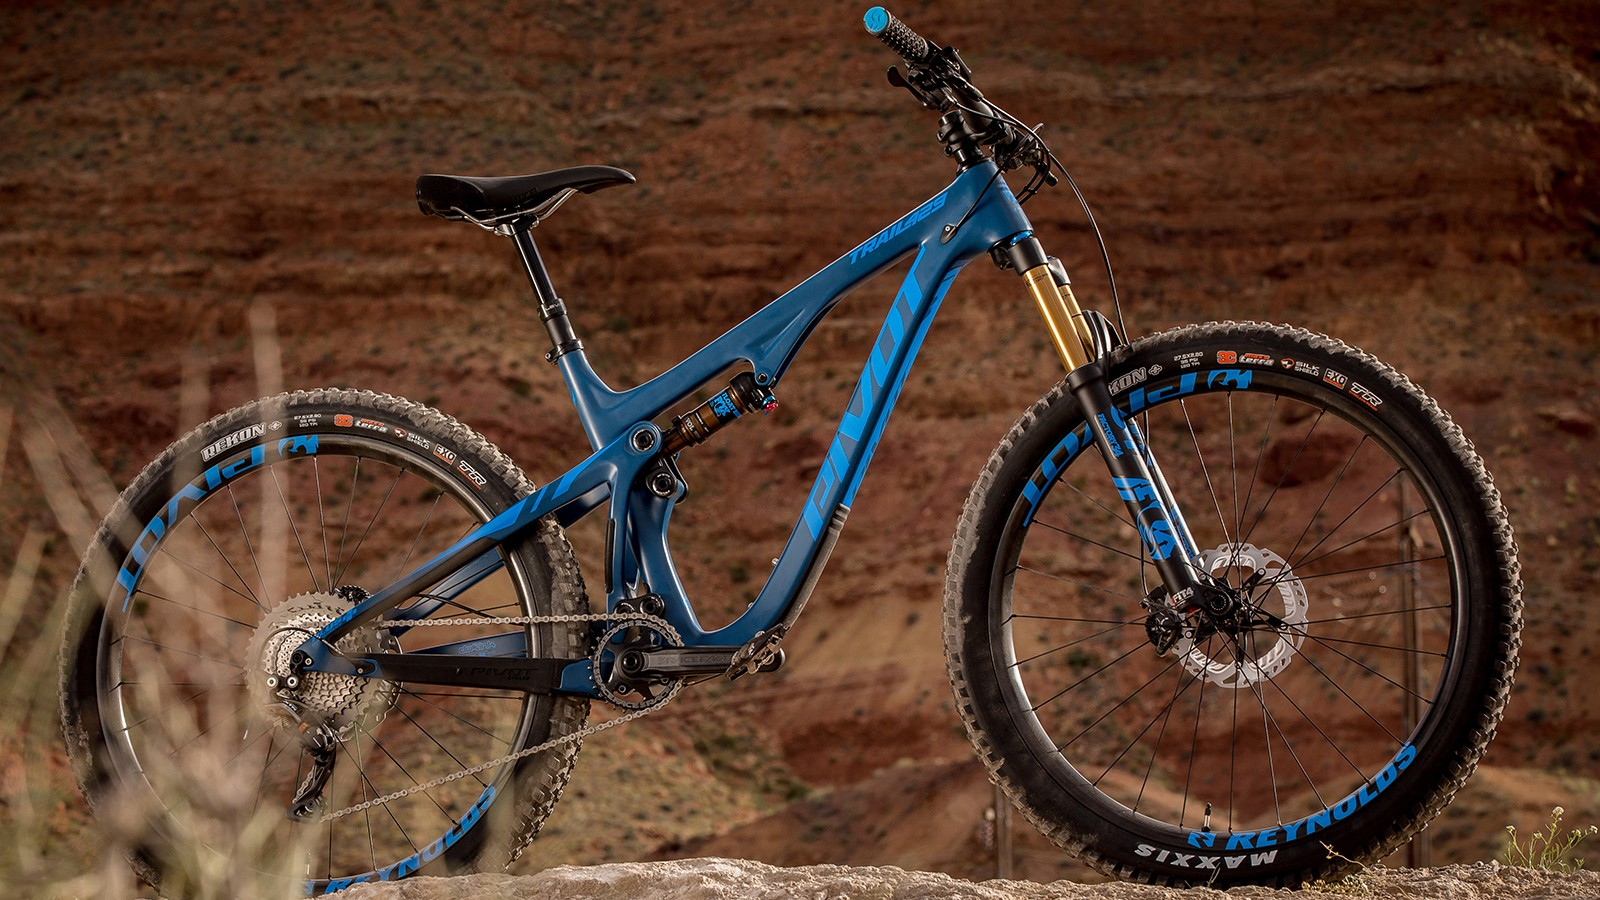 27.5+ wheels and tires, and this striking Blue Steel color, are options on the Trail 429